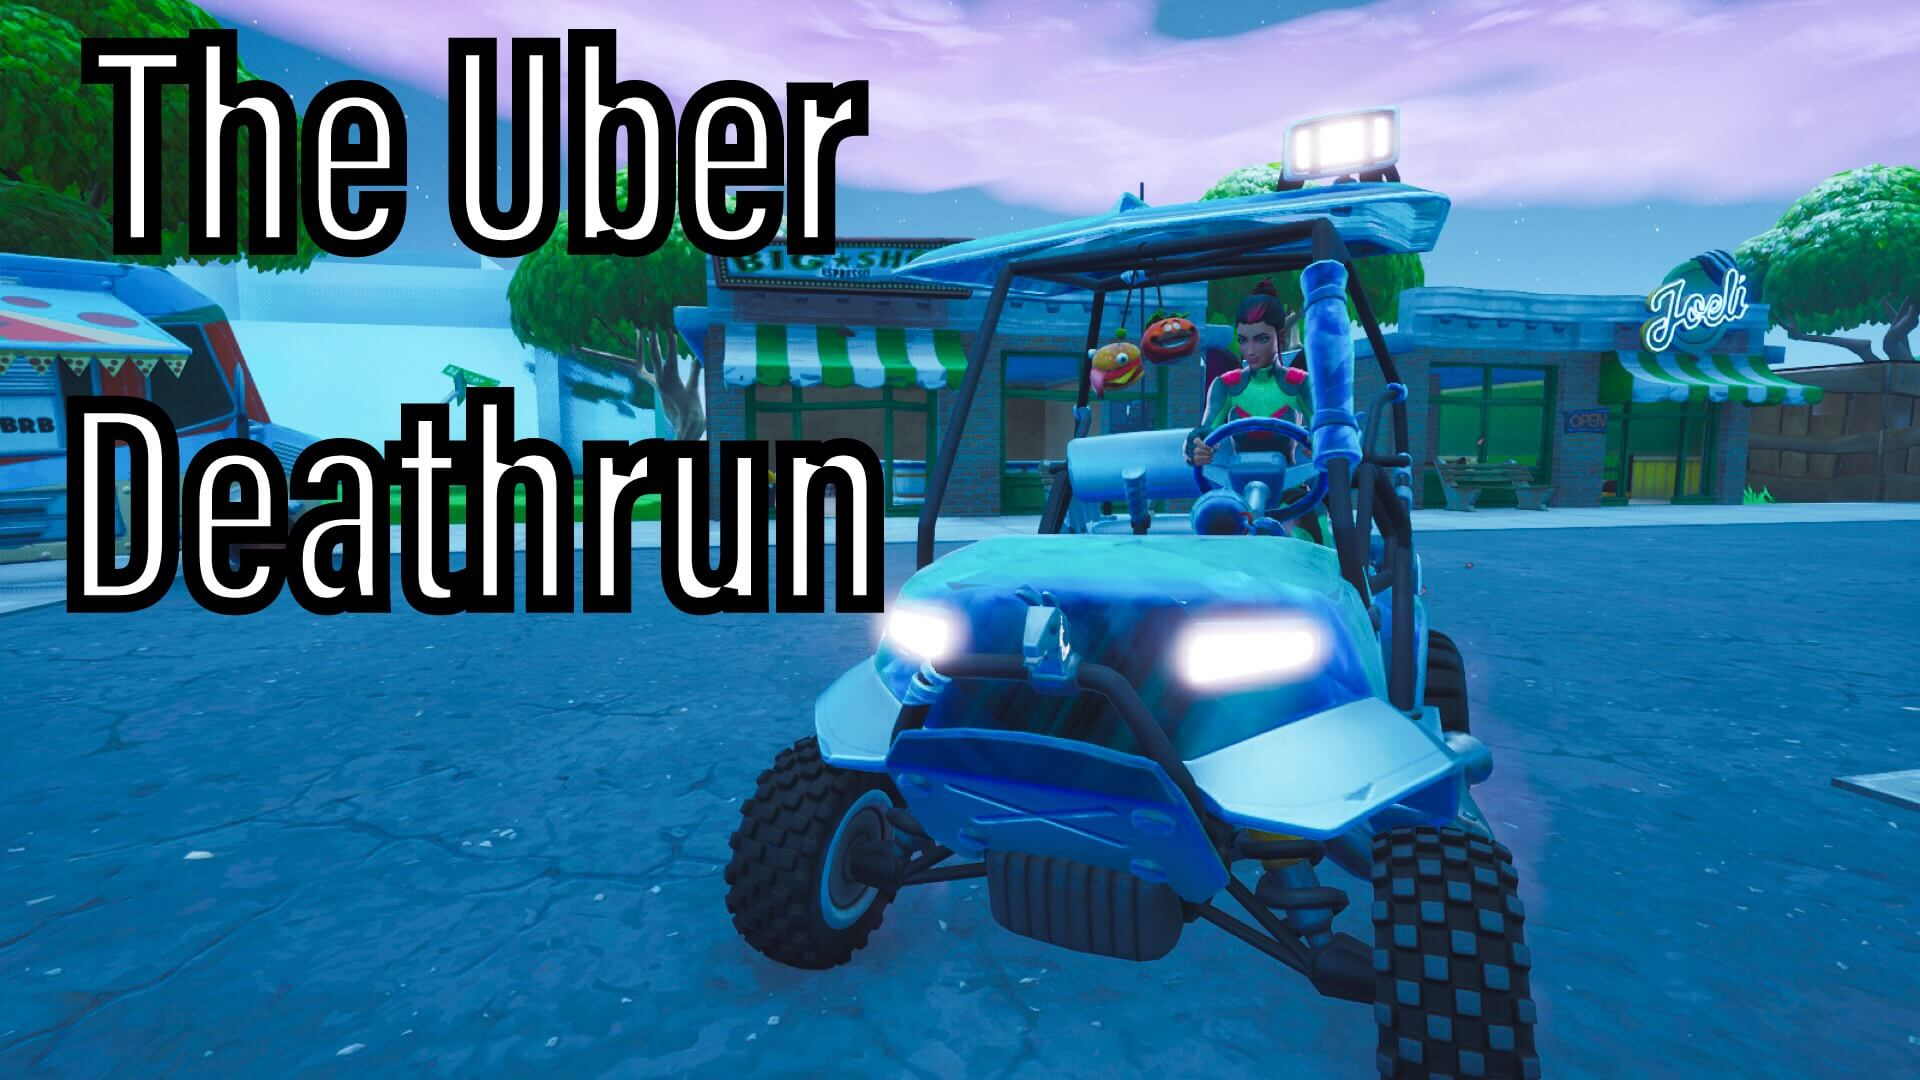 THE UBER DRIVER DEATHRUN